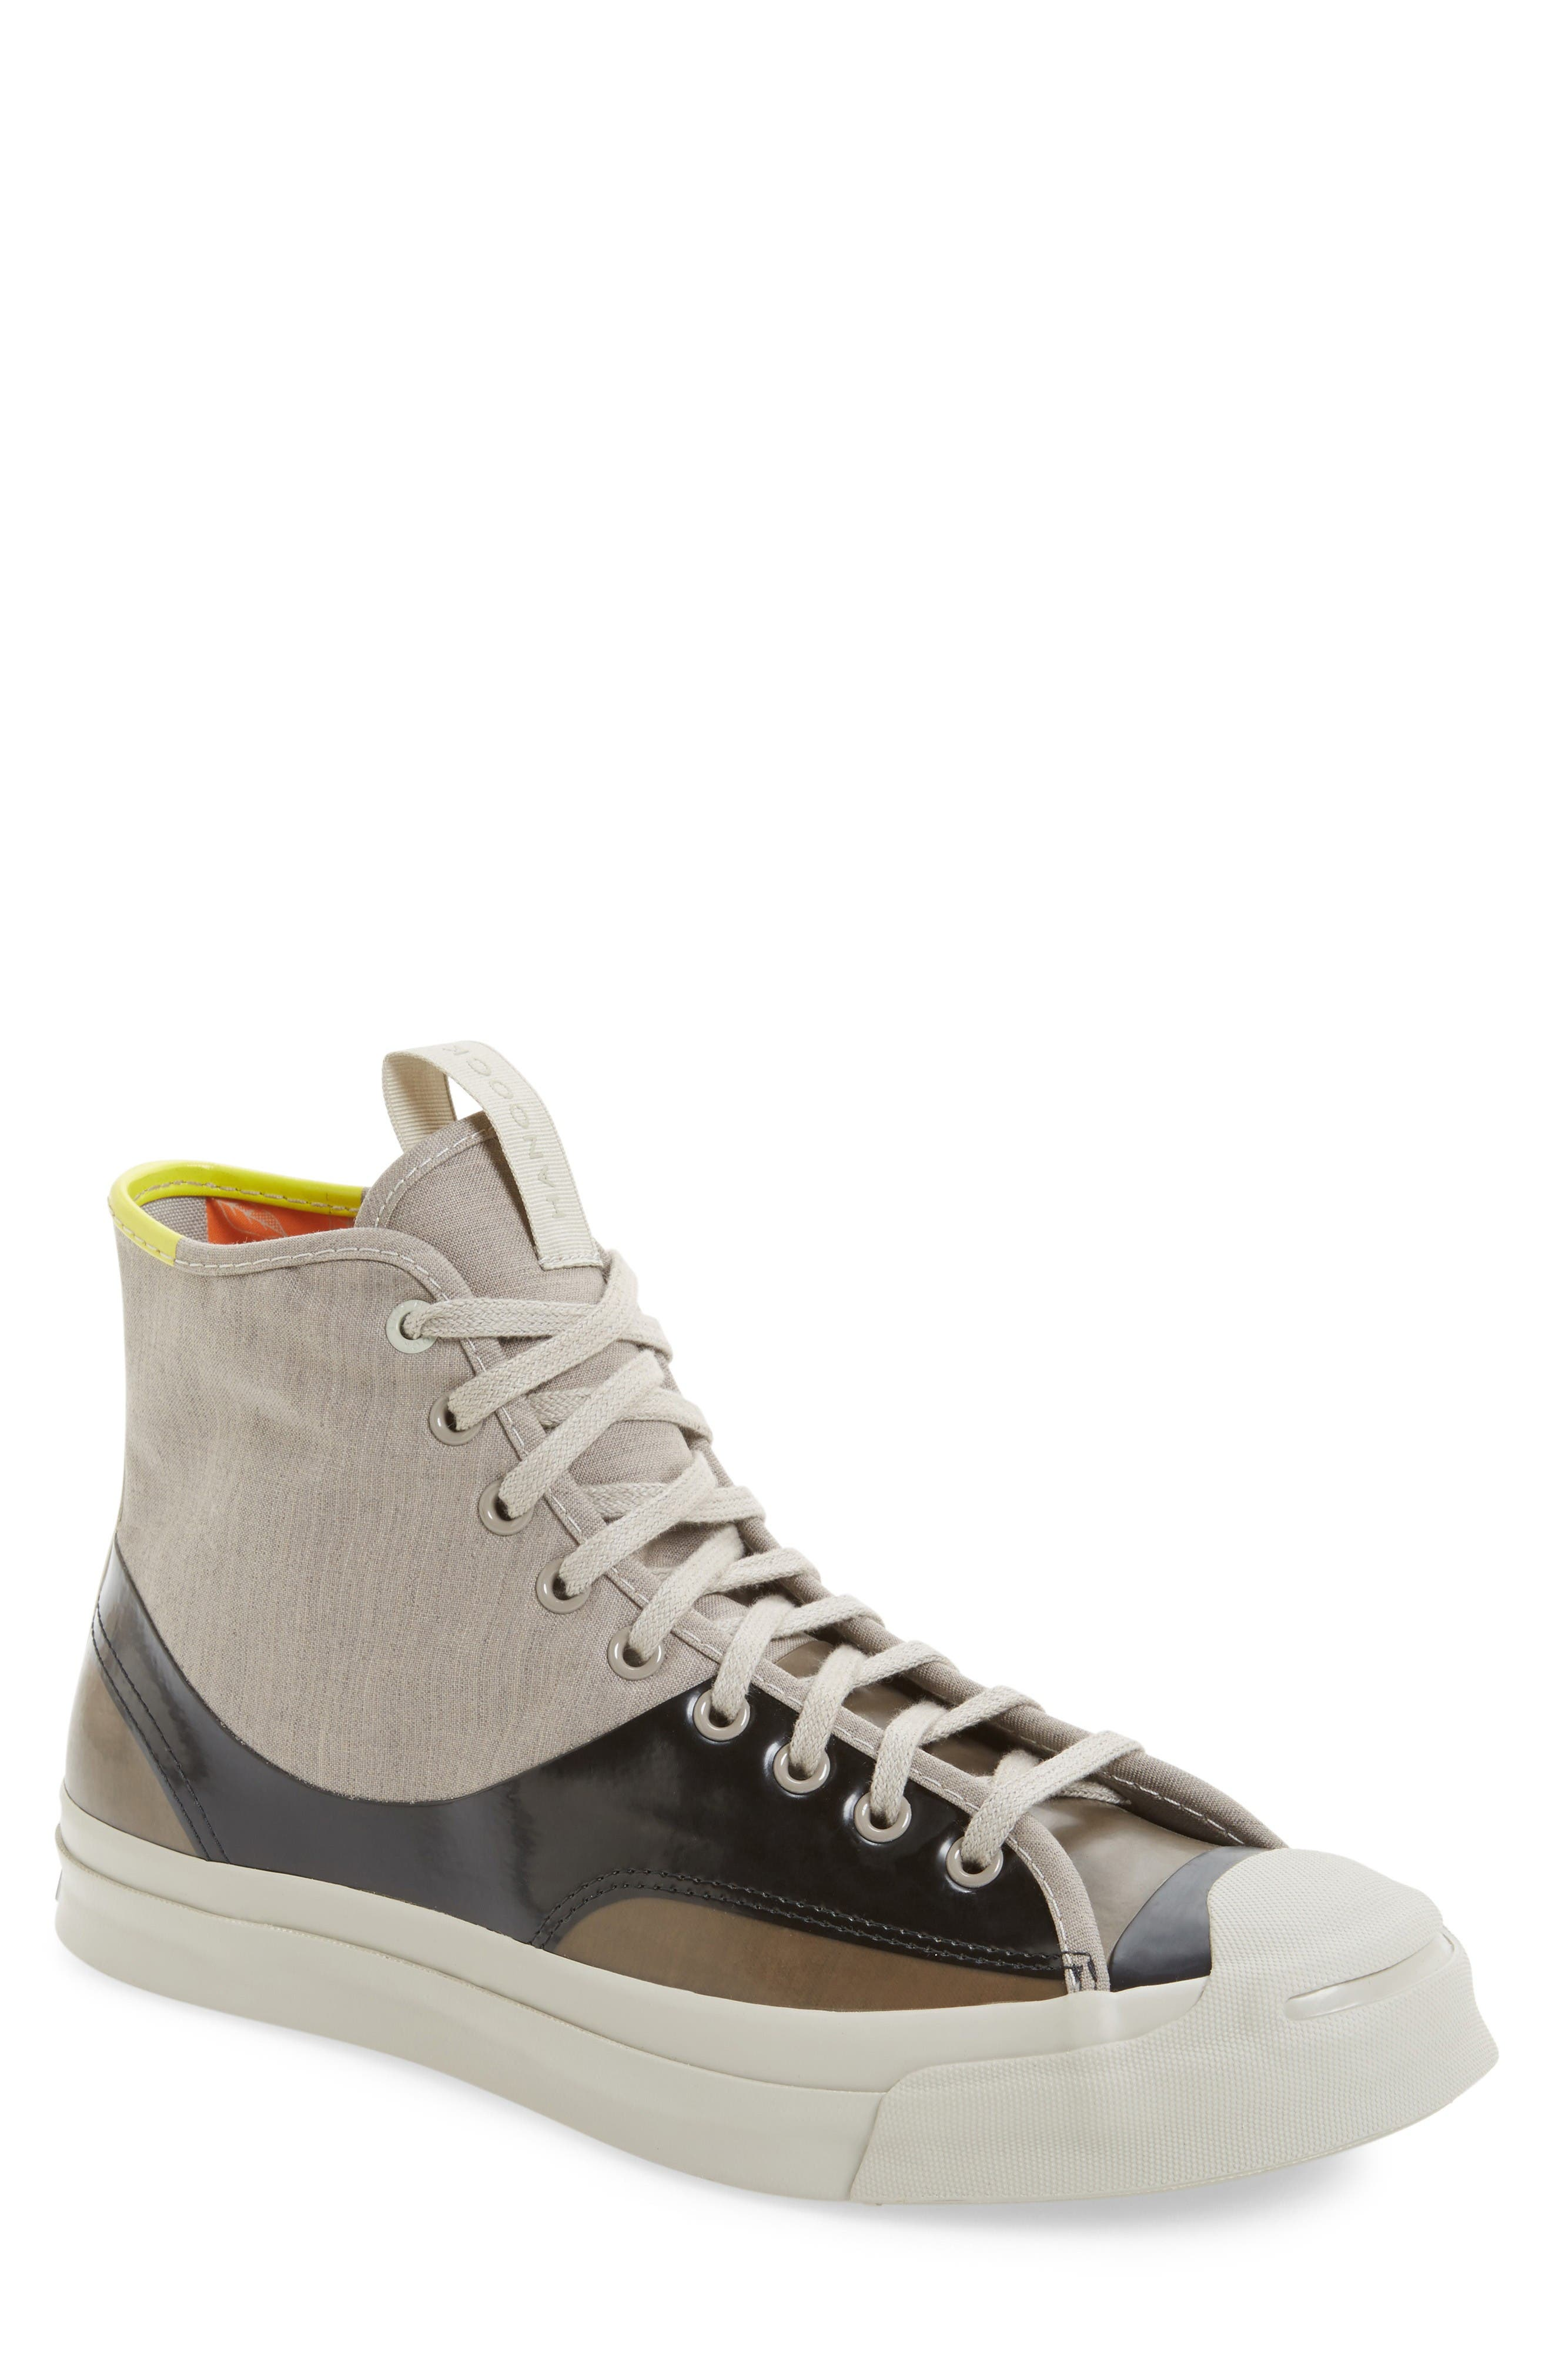 Converse Jack Purcell 1st String Sneaker (Men)